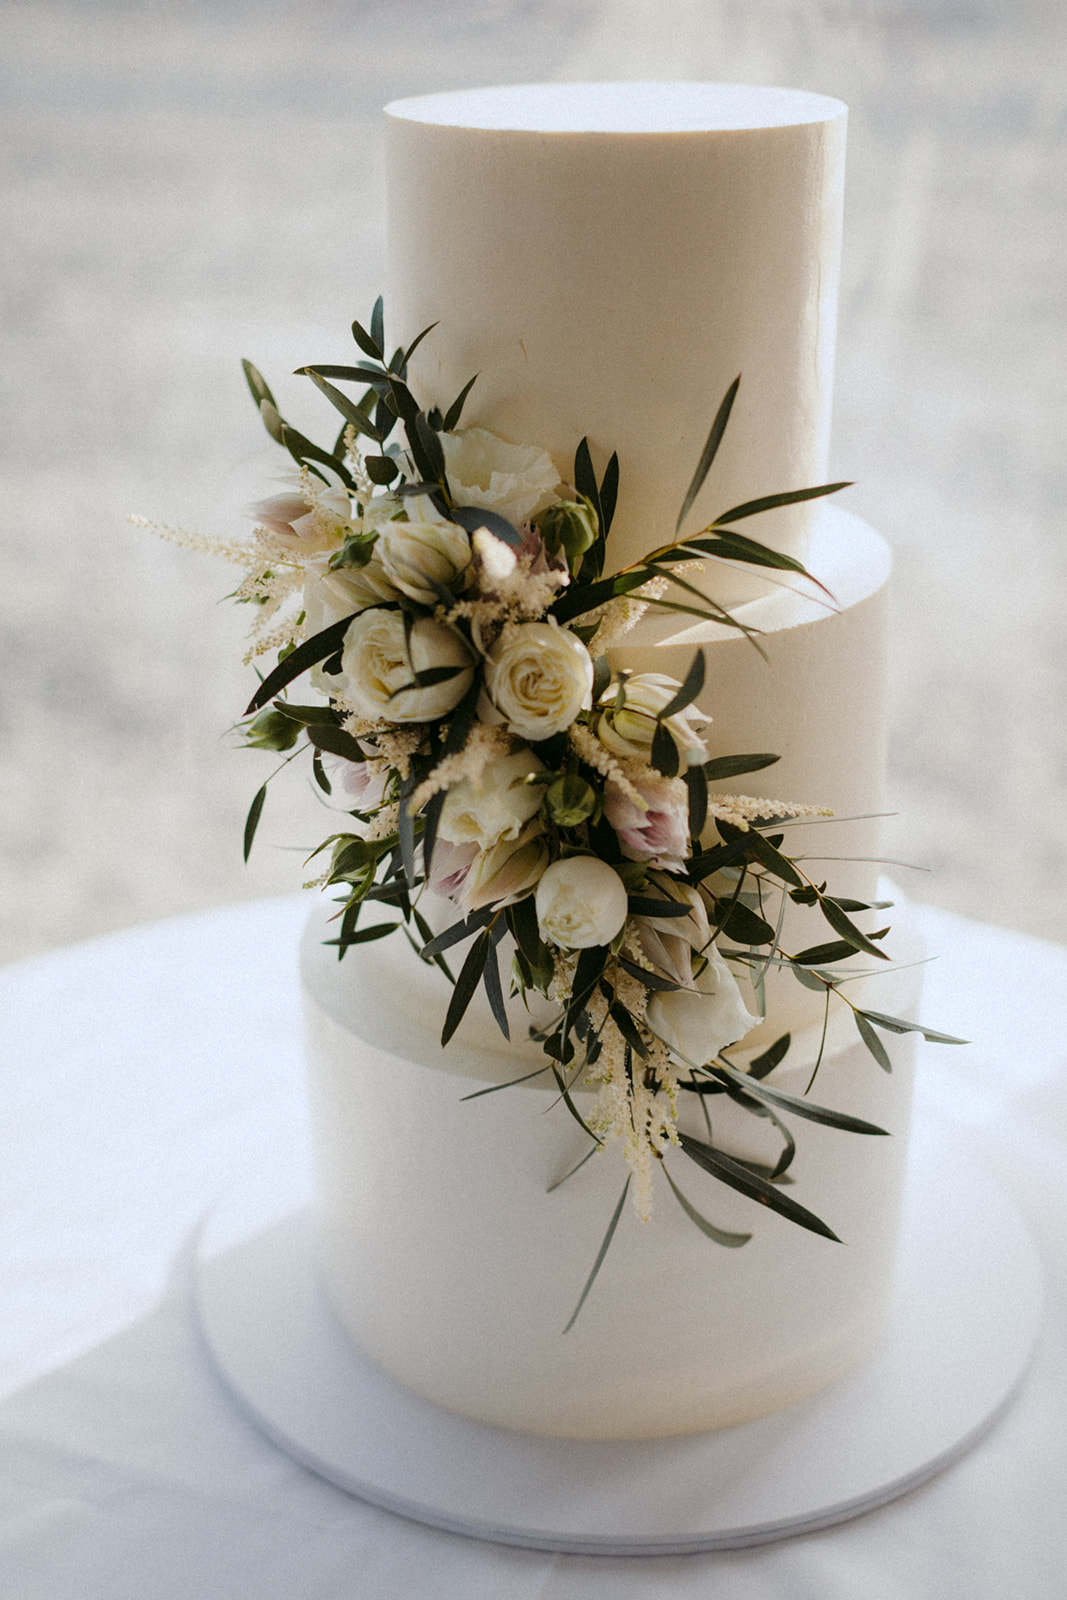 The chocolate mud cake had 3-tiers and a simple design. White buttercream icing was adorned with florals.